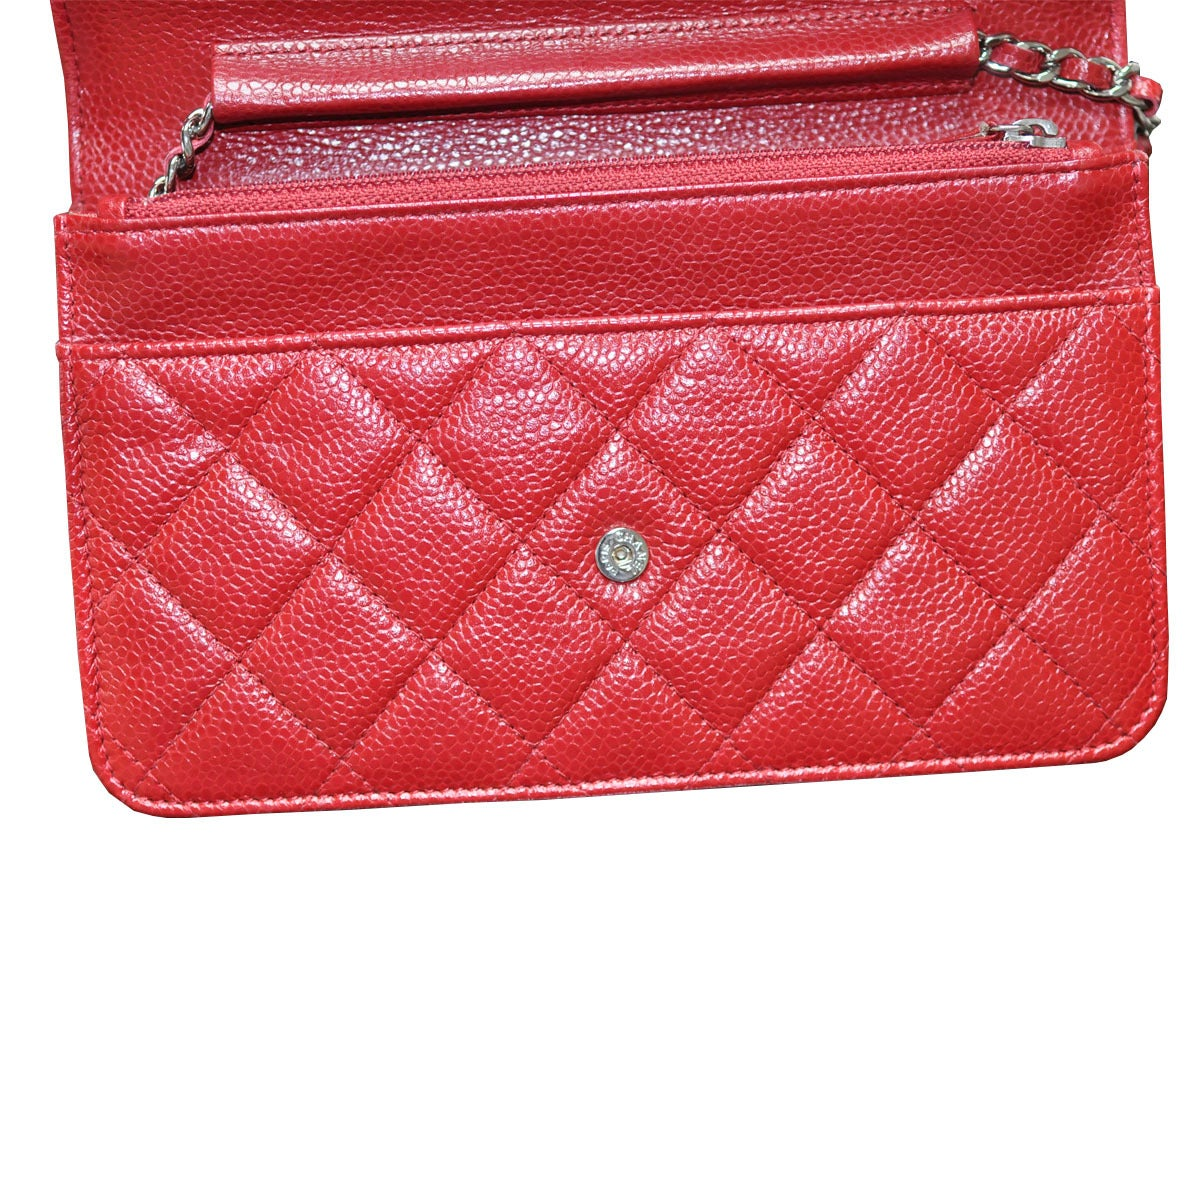 8f85c9d239a5dc Women's Chanel Red Caviar Leather WOC Wallet on Chain Silver Hardware  Handbag For Sale